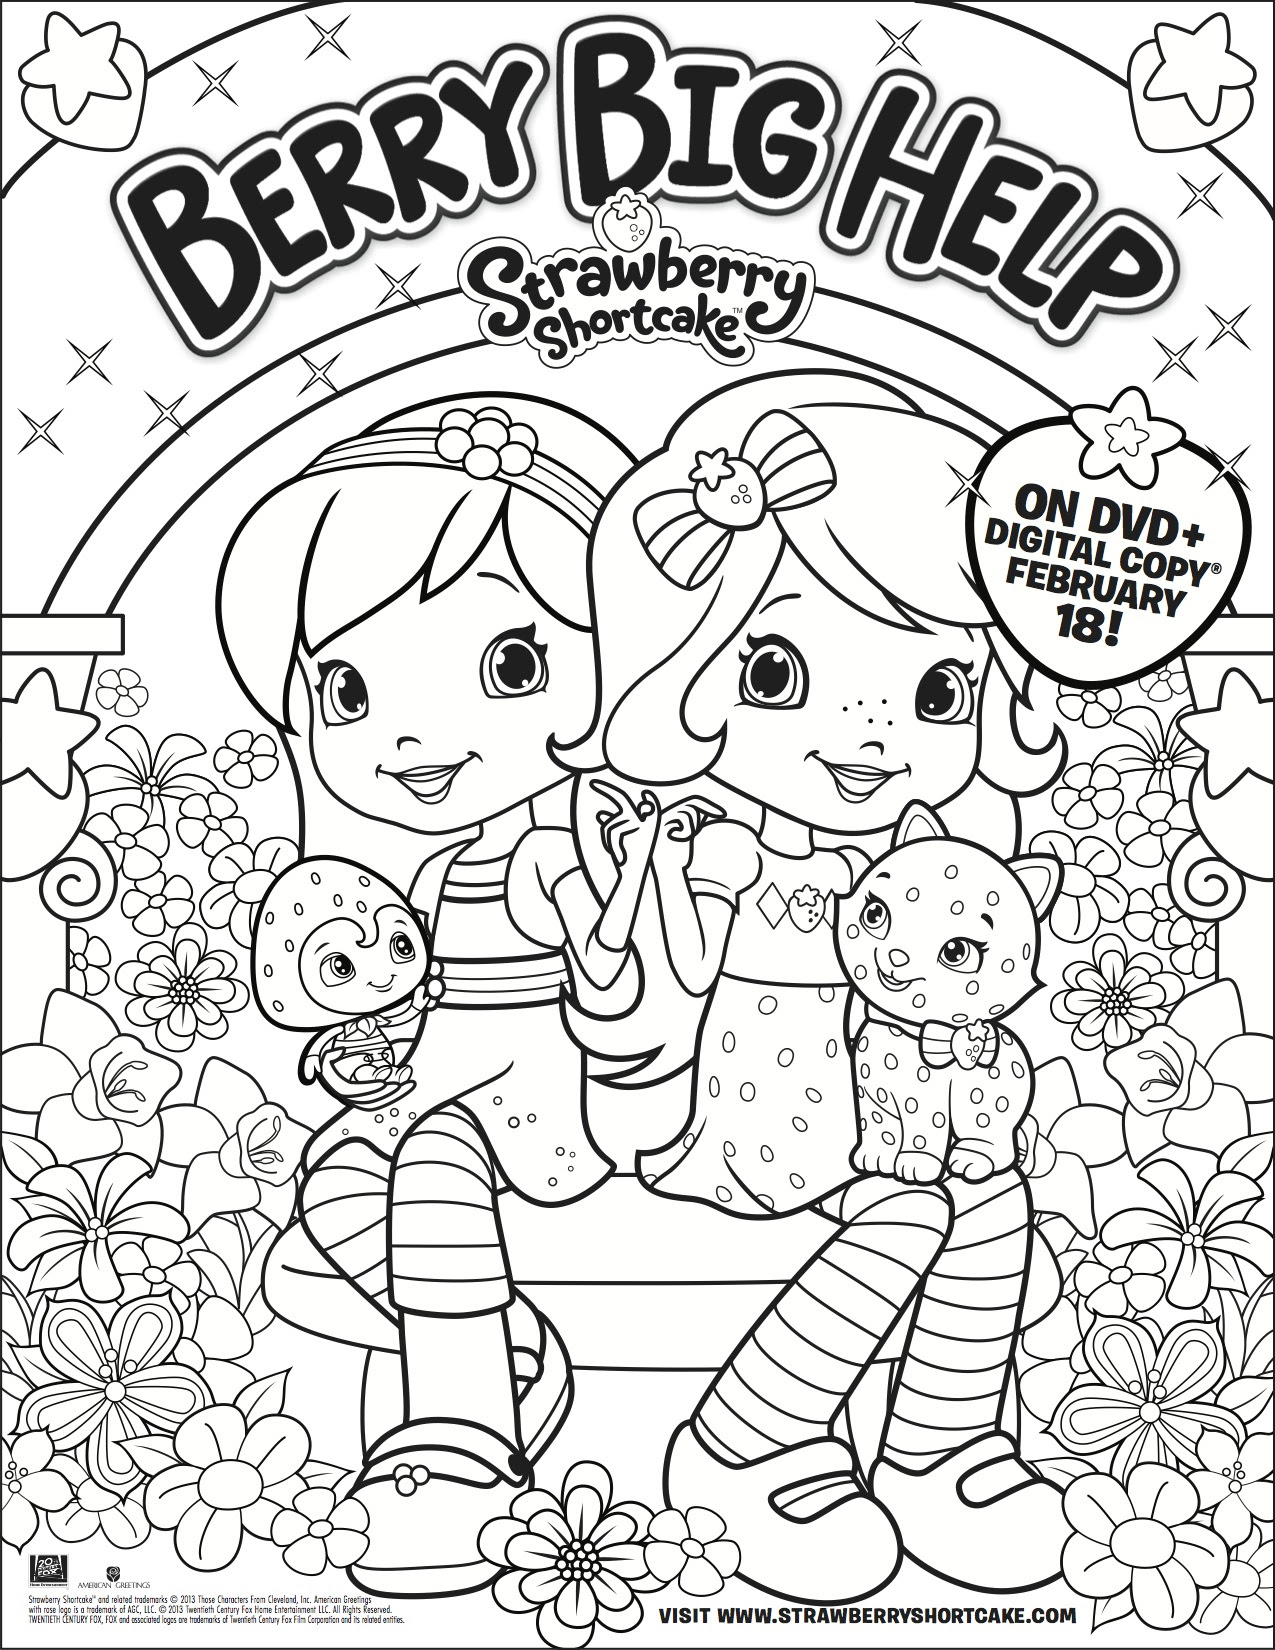 strawberry shortcake dvd berry big help here is a free printable coloring page for your children simply right click on the image save it or open it - Strawberry Shortcake Coloring Pages